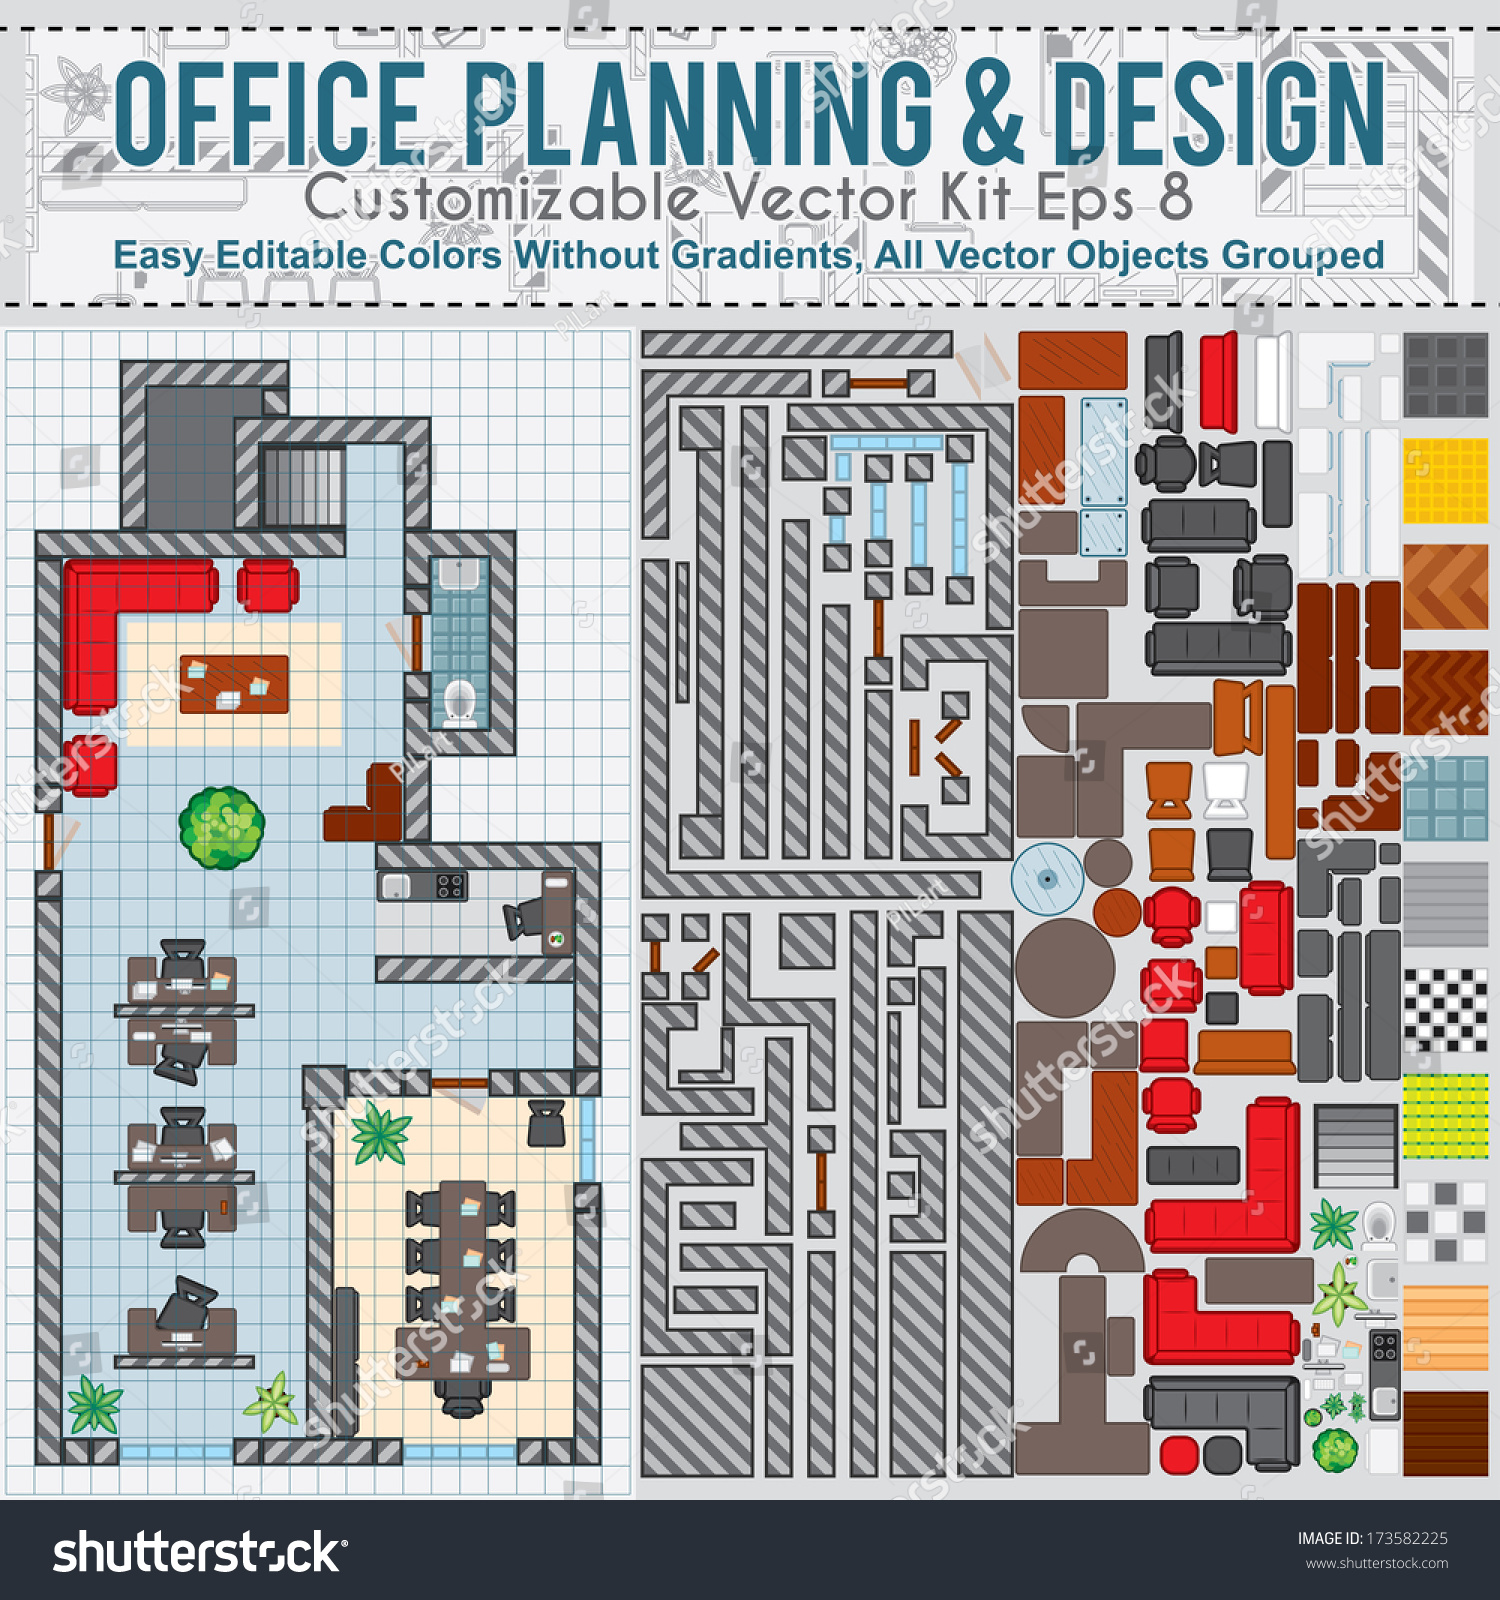 Office space planning and design vector kit contains for Interior design planning checklist